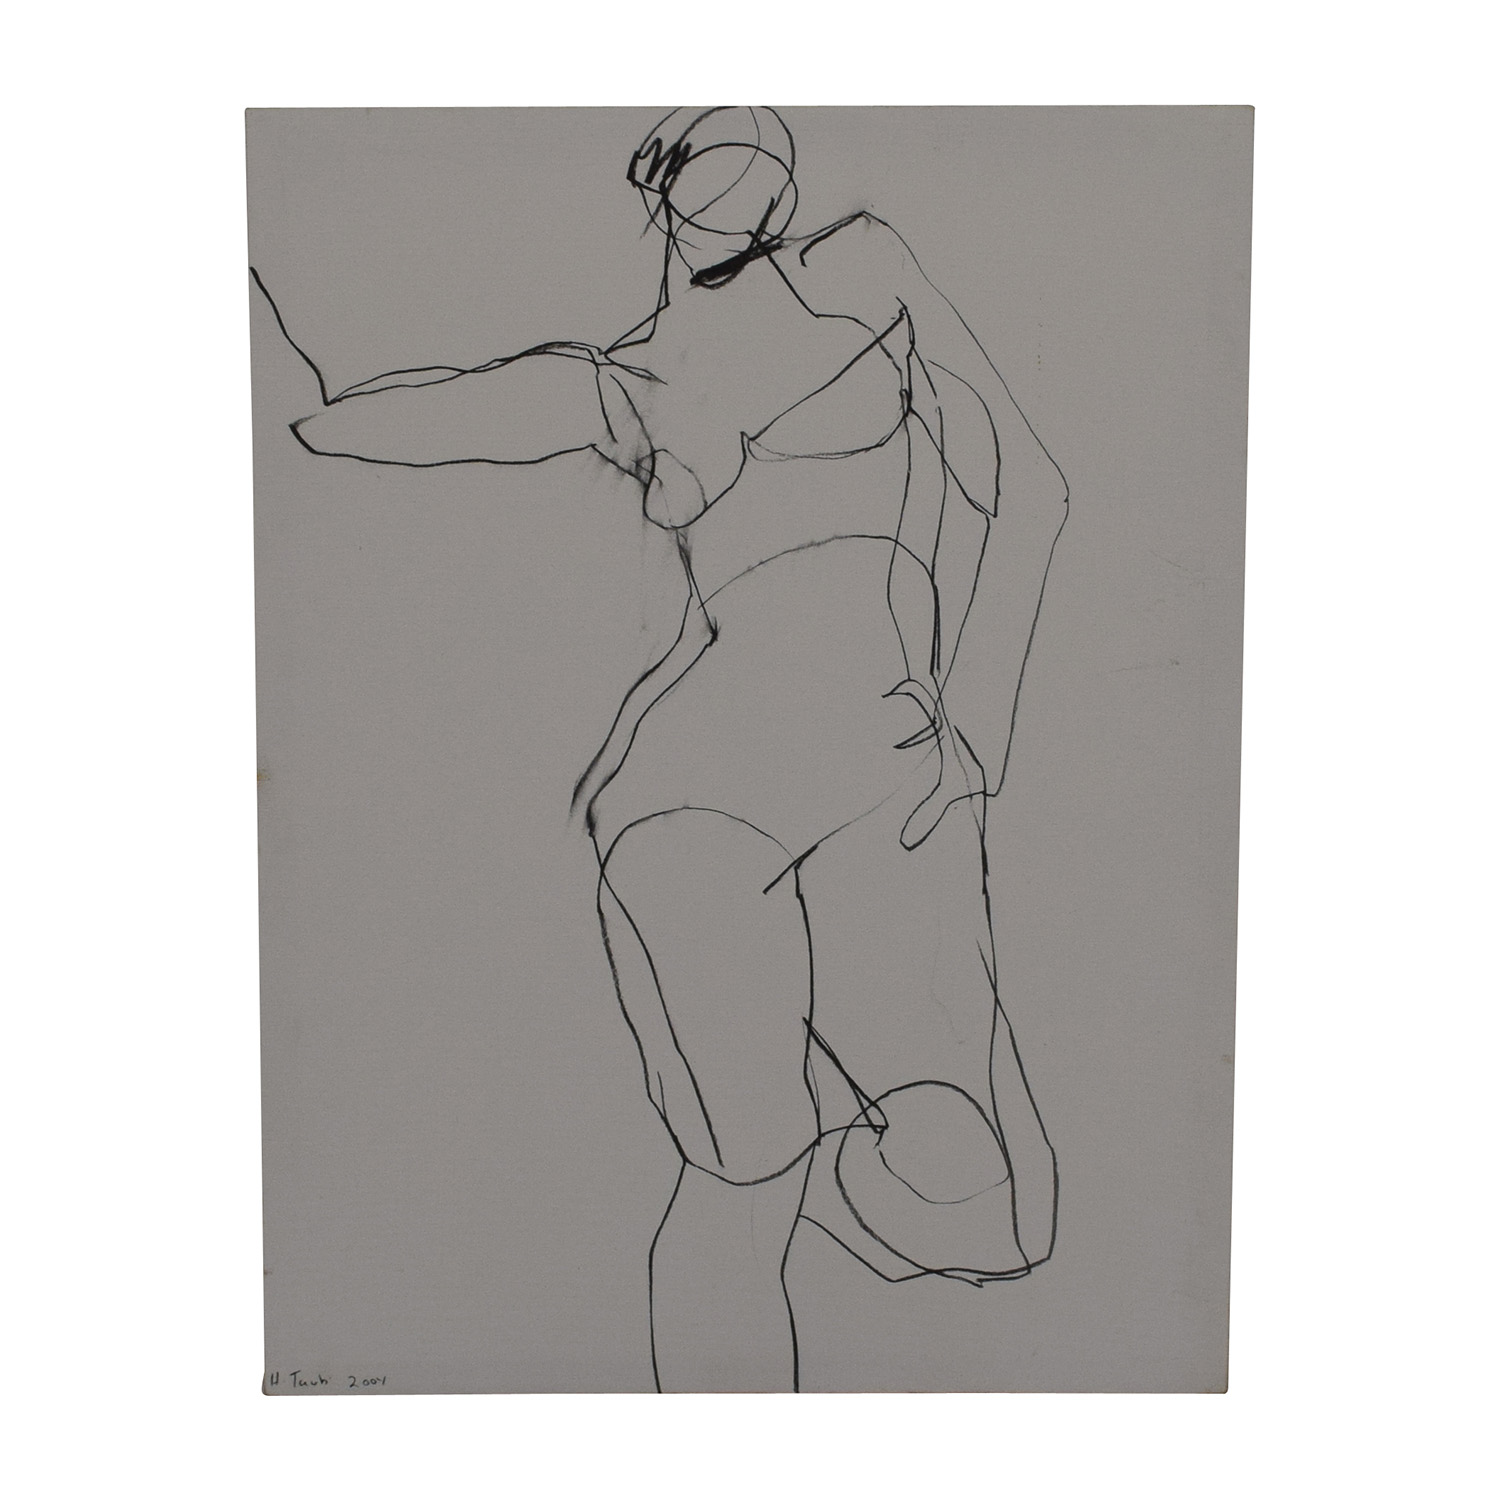 H. Taub Life Drawing / Wall Art